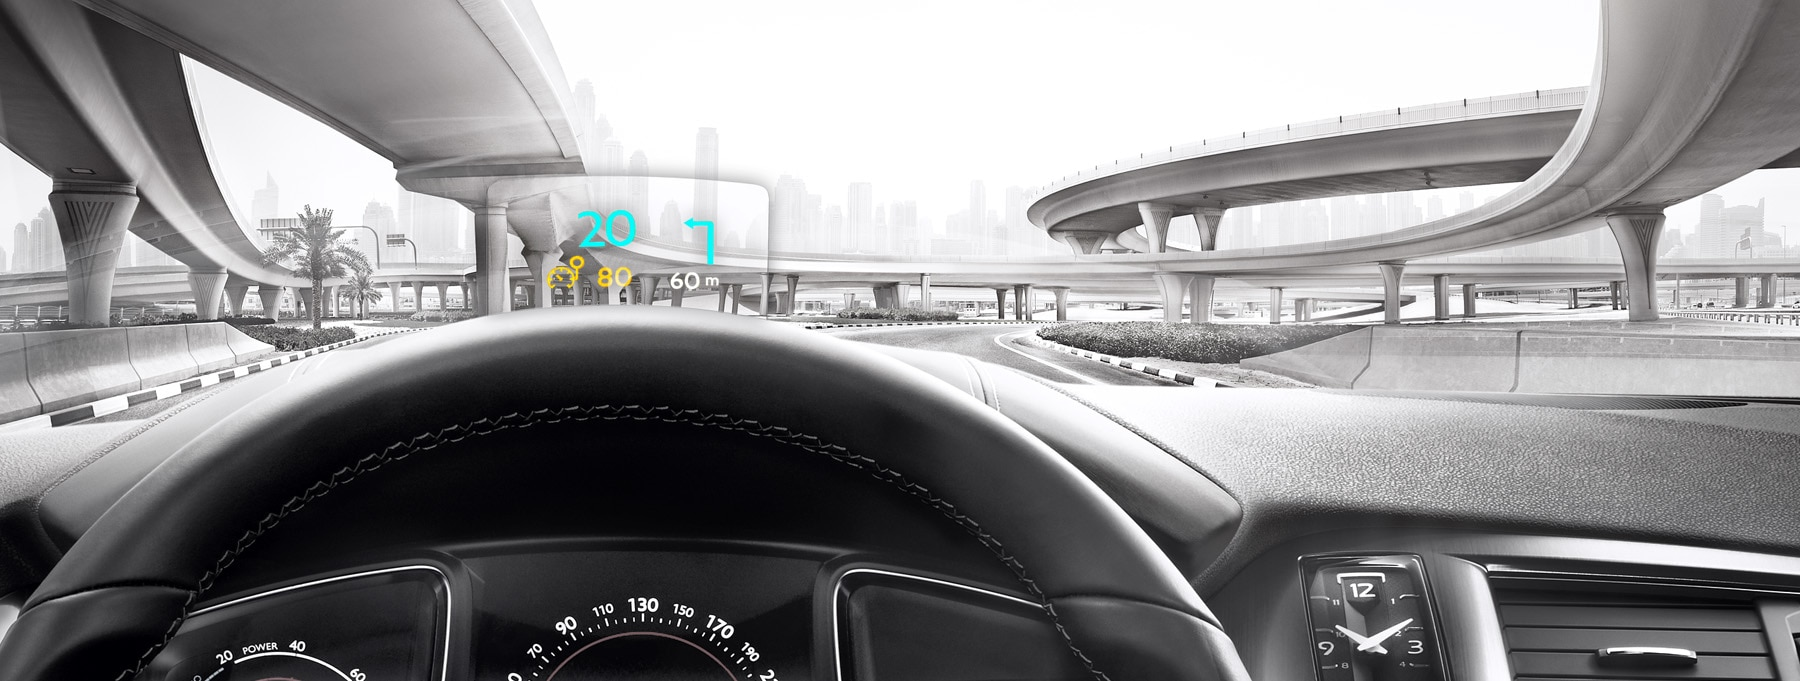 Sicherheit – Head-Up Display